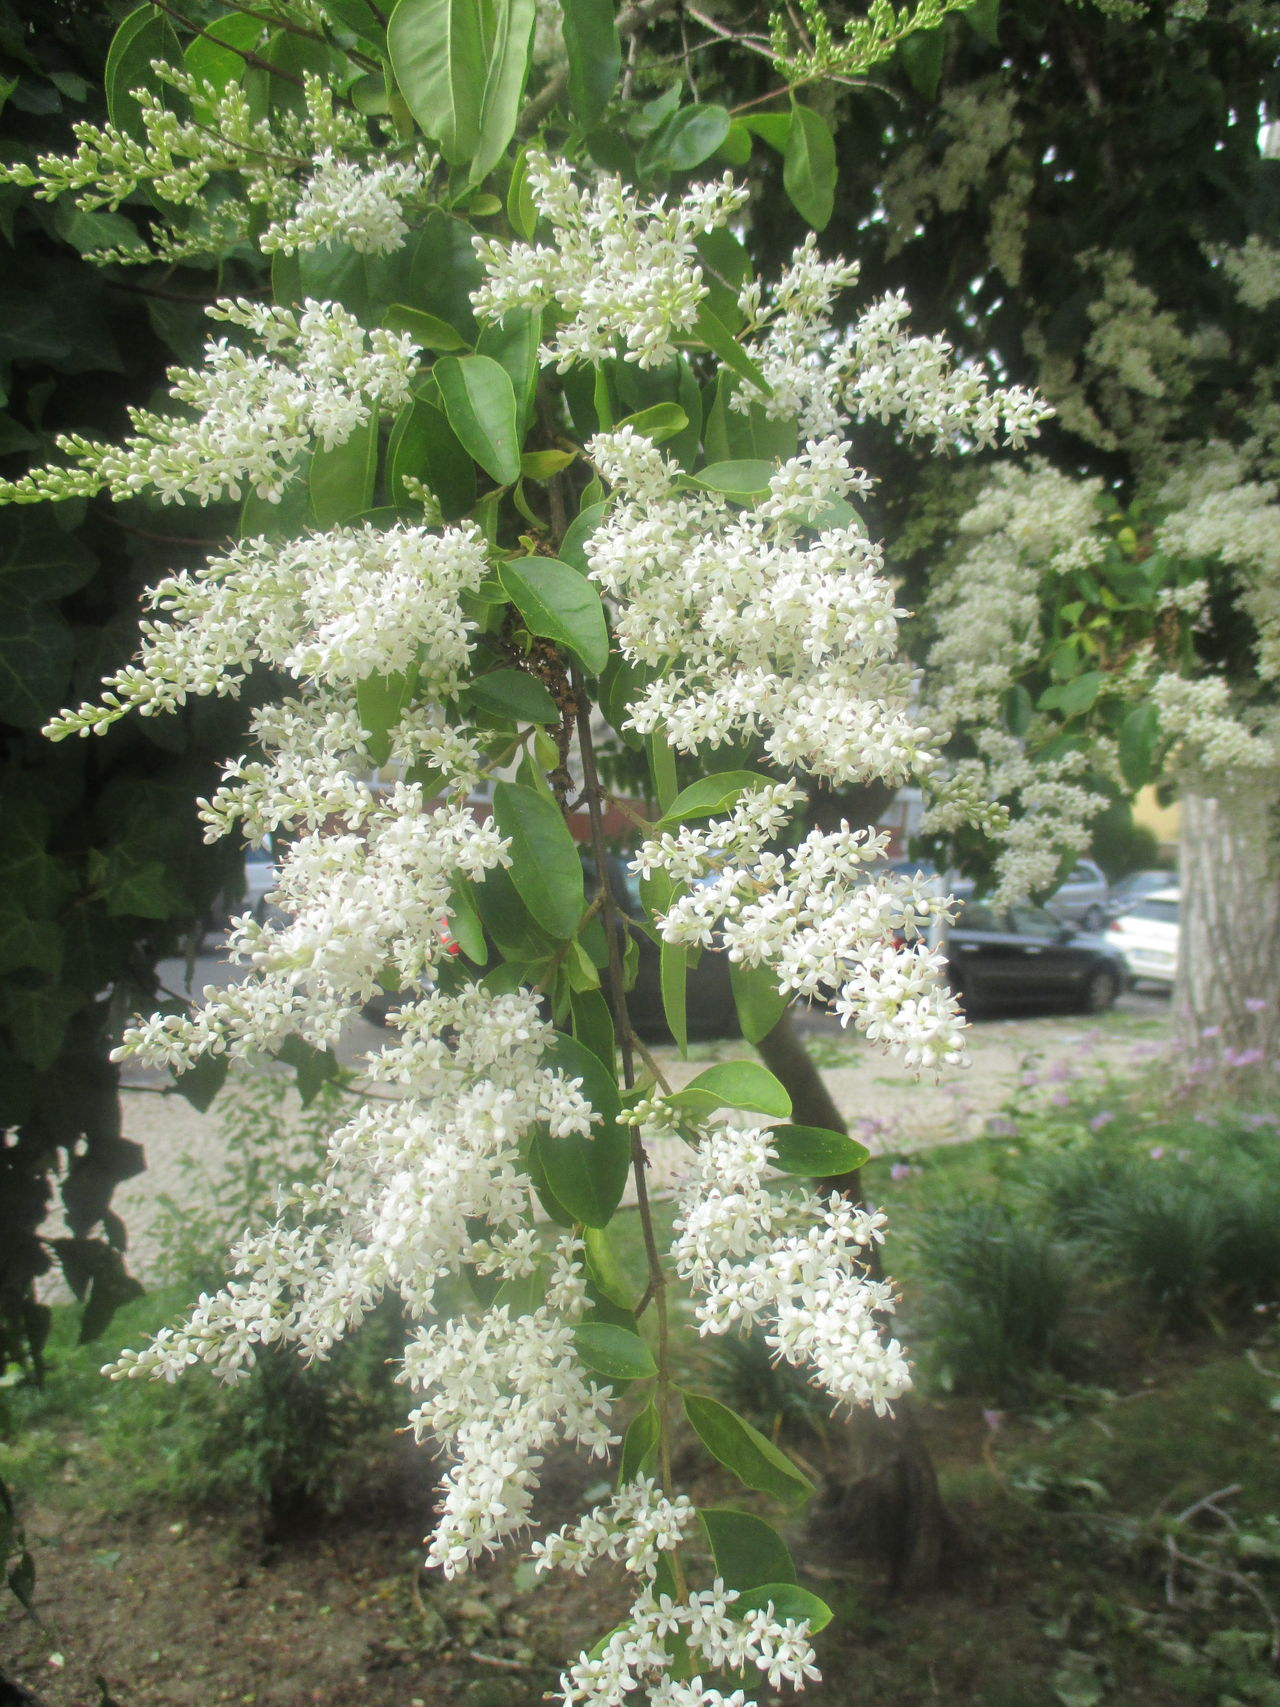 #elegance #fragance #fragility #new Life #romantic #scent Beauty In Nature Blooming Blooming Flower Day Flourishing Flower Fragility Freshness Green Color Growth Leaf Nature No People Outdoors Plant Rebirth Romantic Beauty Spring Tree